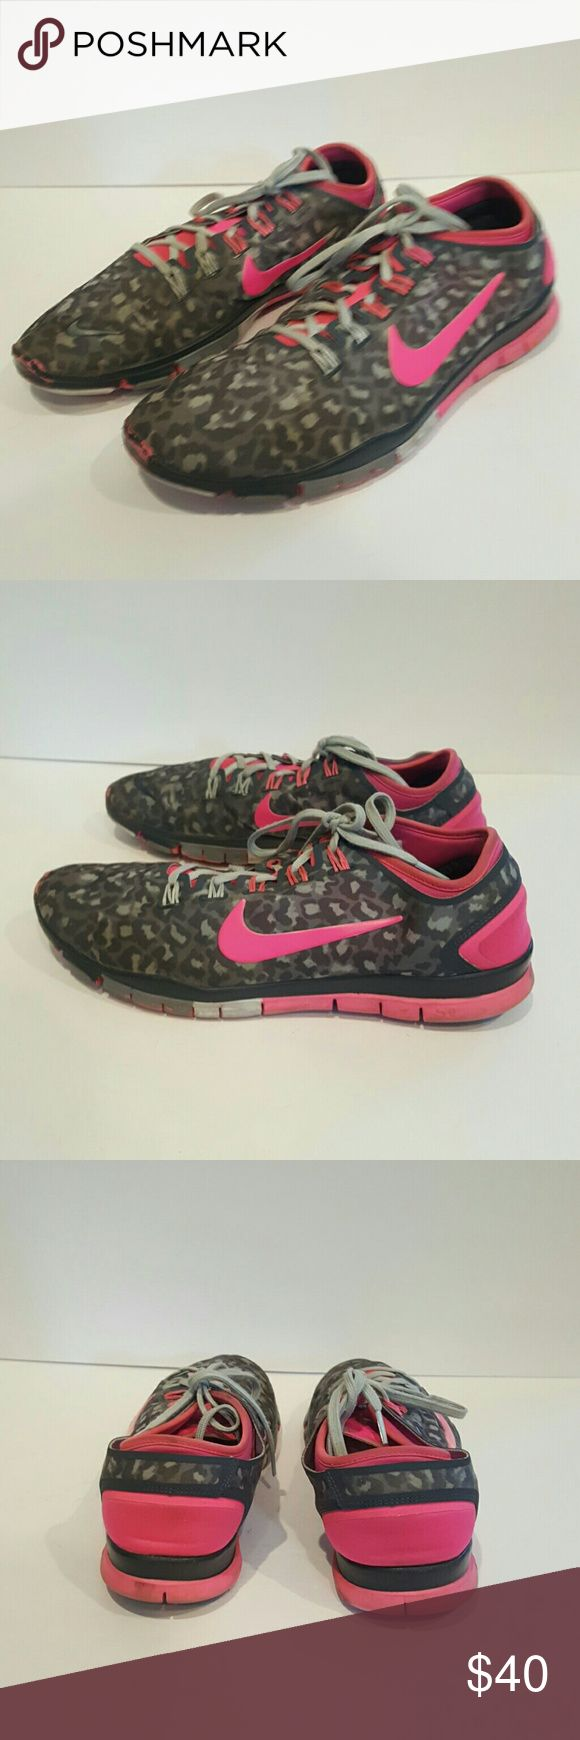 NIKE FREE TR CONNECT 2 PINK GREY CHEETAH NIKE WOMENS SIZE 10 CHEETAH AND PINK SMALL HOLE IN FRONT NOT NOTICEABLE LOTS OF LIFE LEFT RARE COLOR WAY SO CUTE! Nike Shoes Athletic Shoes